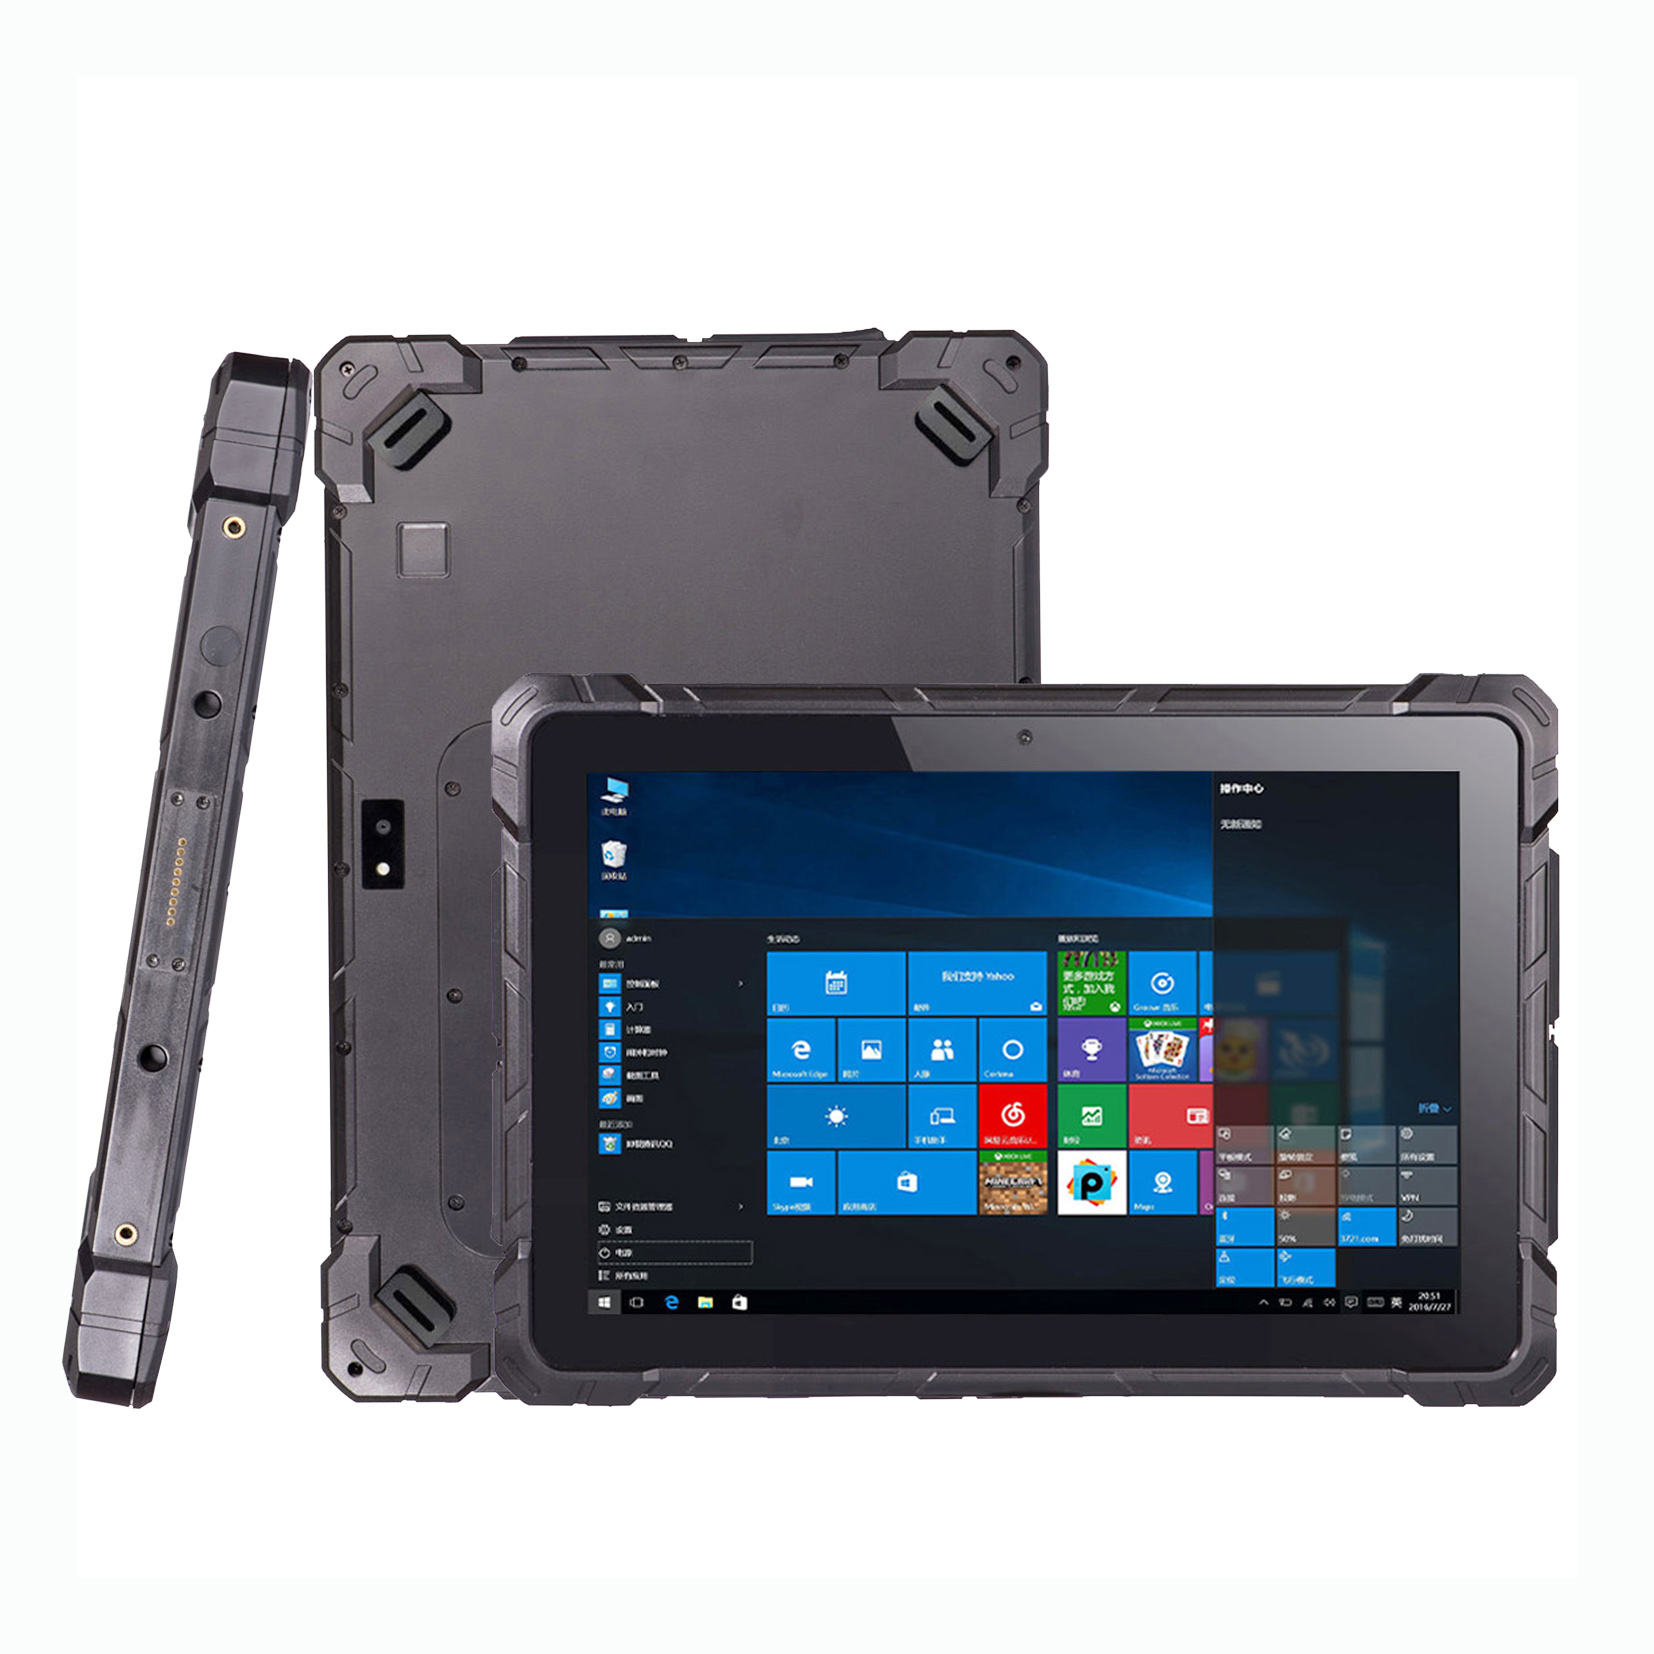 10.1 inch warehouse medical tablet computer IP67 Rugged industrial touch screen Mini PC